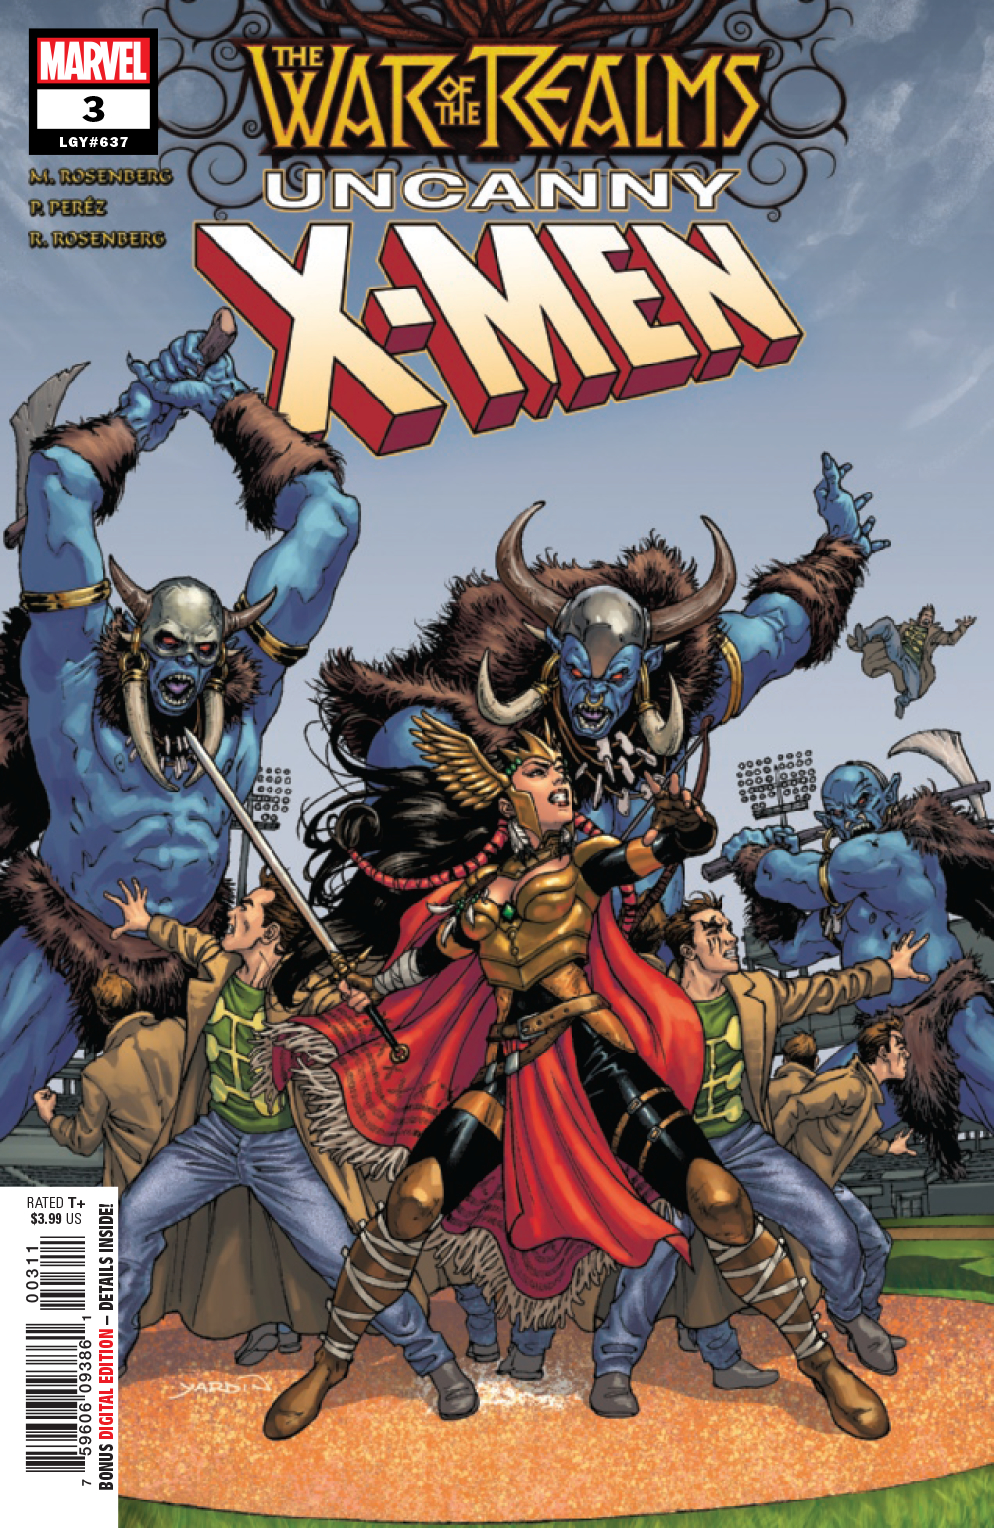 WAR OF REALMS UNCANNY X-MEN #3 (OF 3) WR